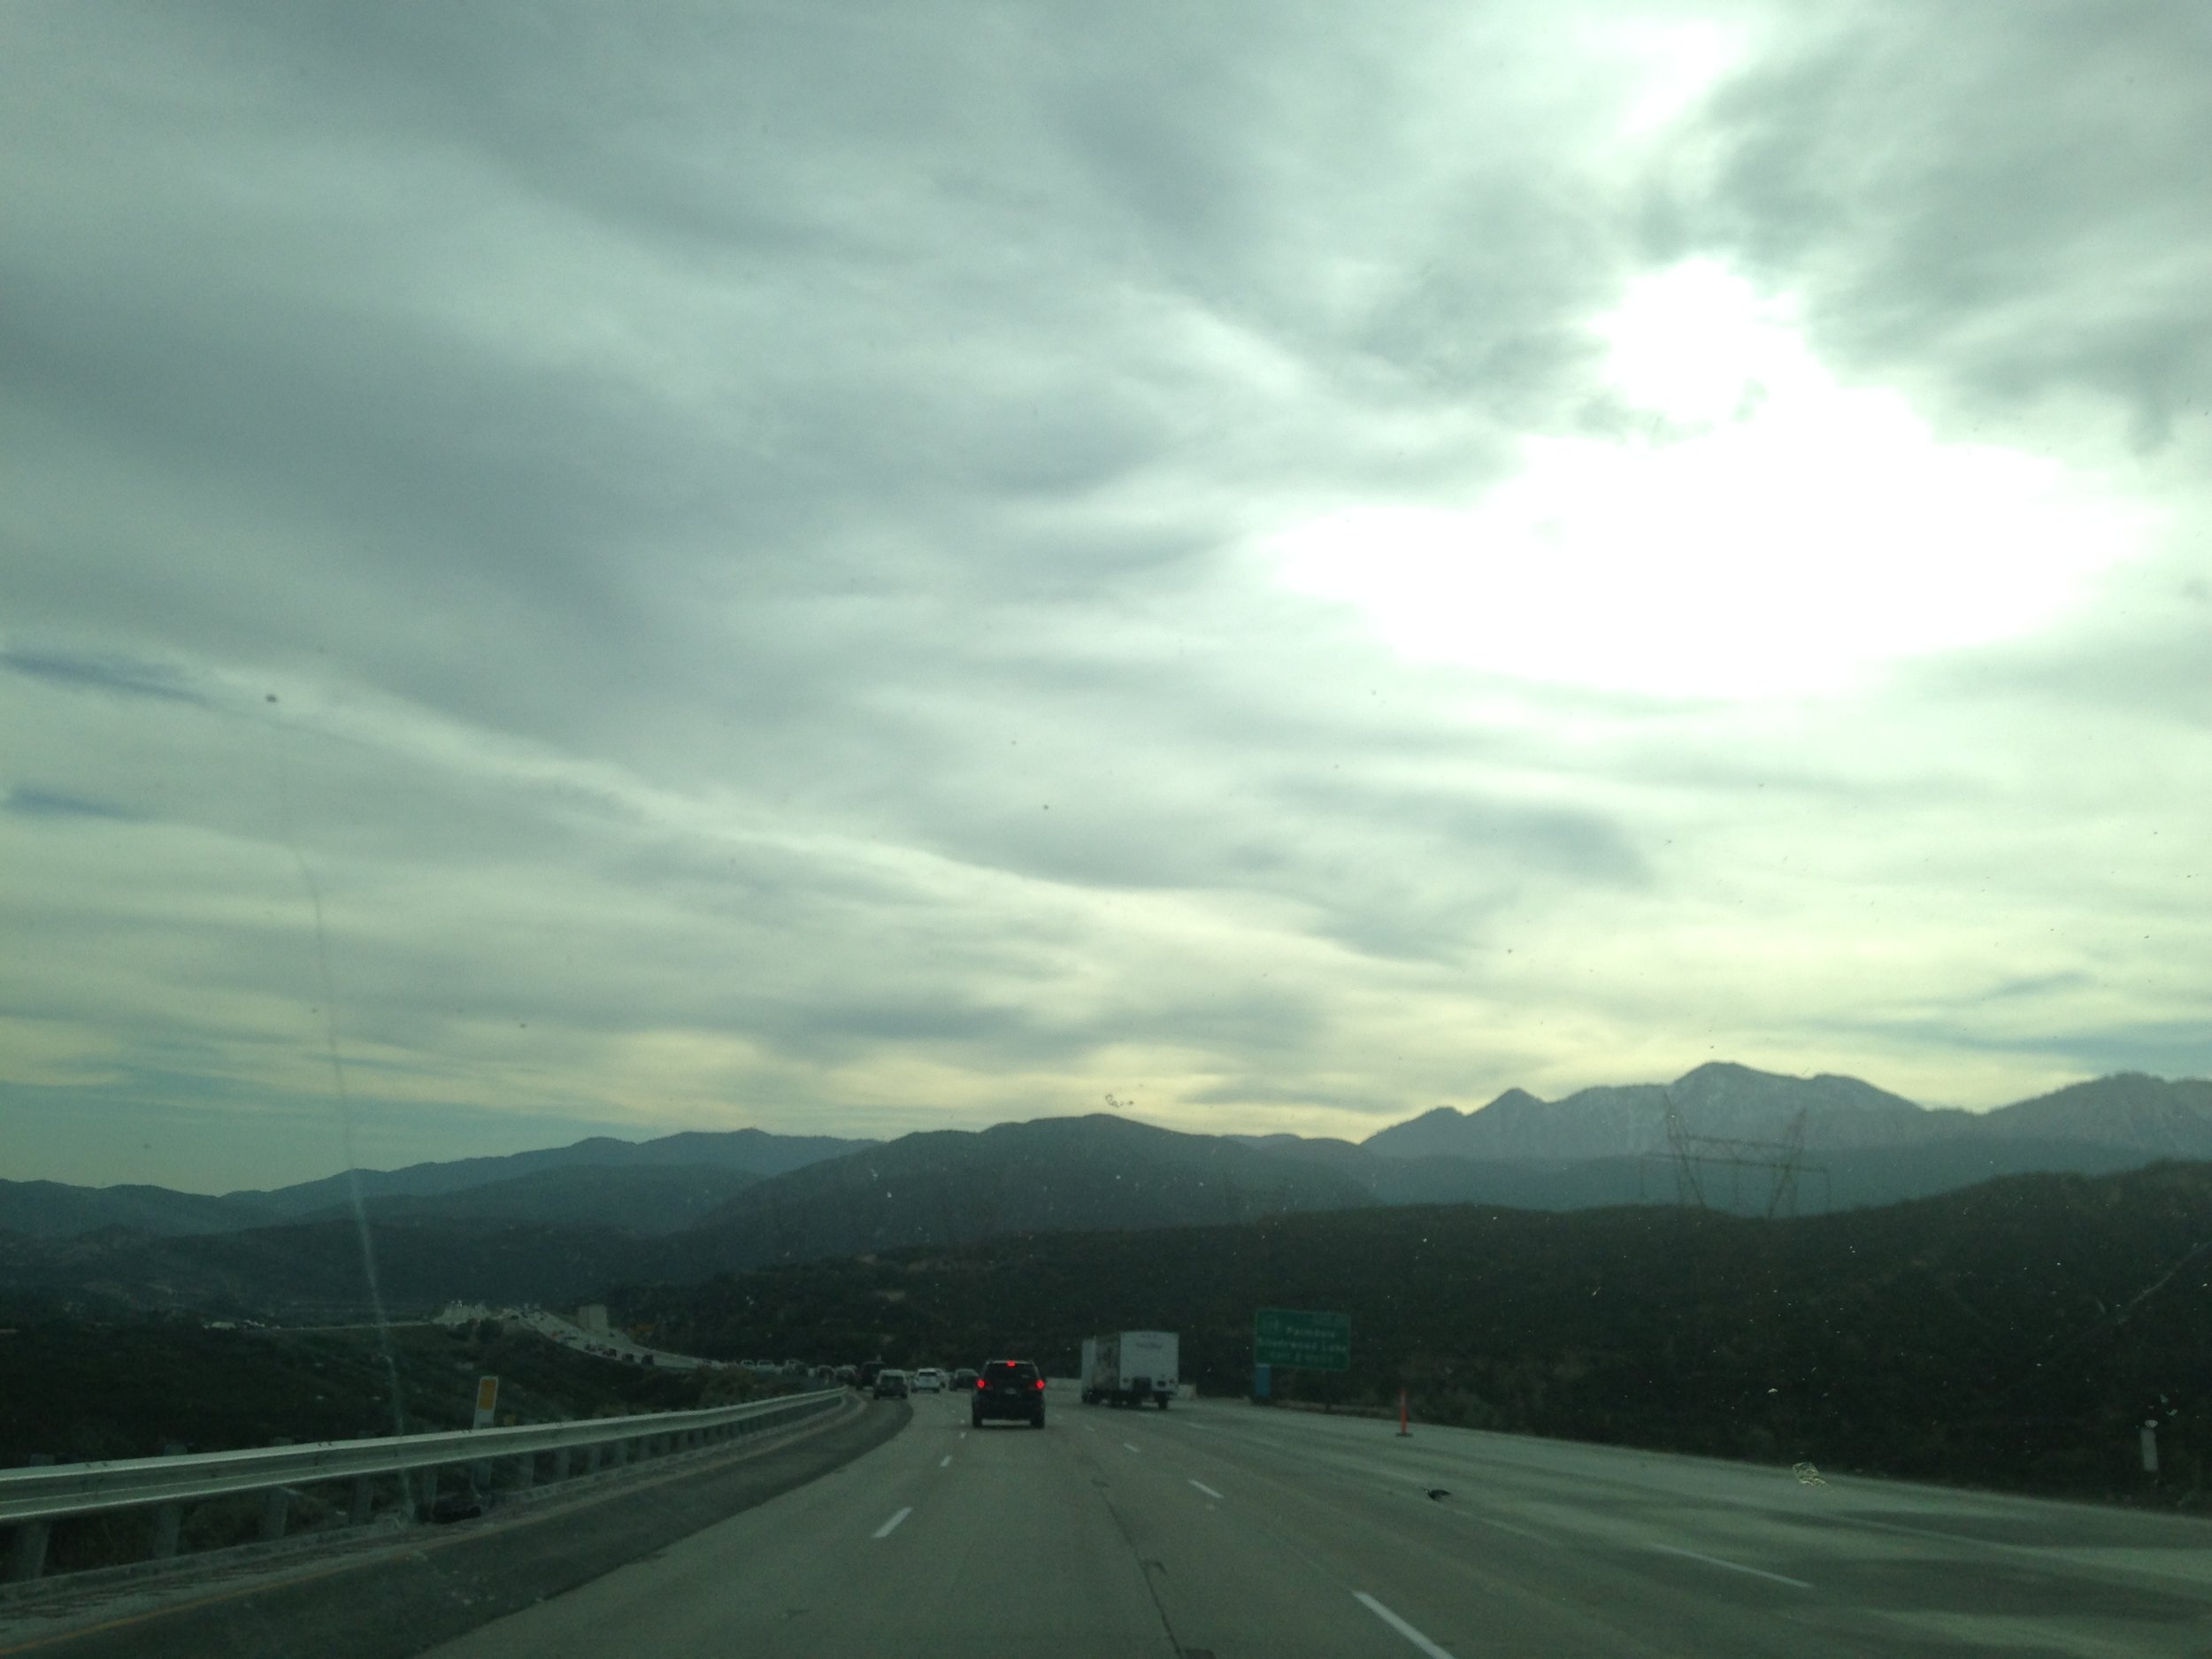 Our beautiful drive through the San Andres mountains.